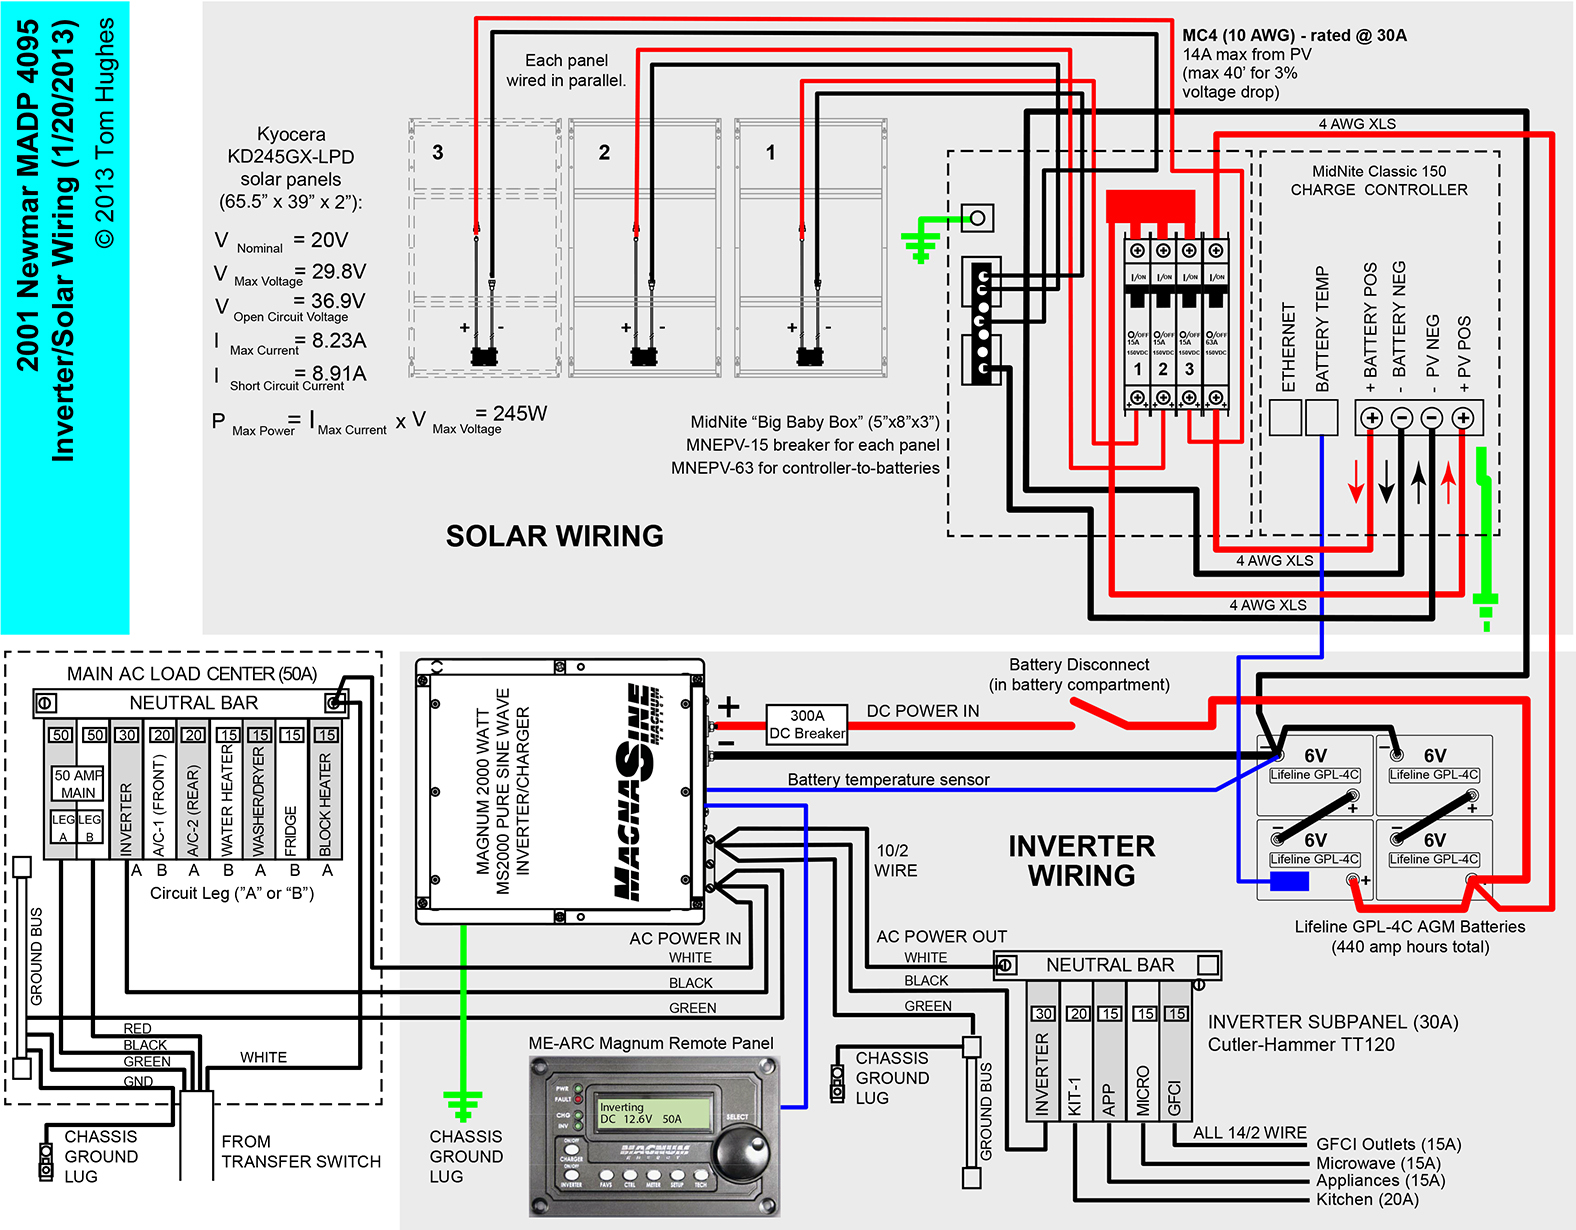 ms2000_newmar_inverter_wiring_01_20_2013 wiring diagram of inverter sma wiring diagram \u2022 wiring diagrams rv converter charger wiring diagram at mifinder.co